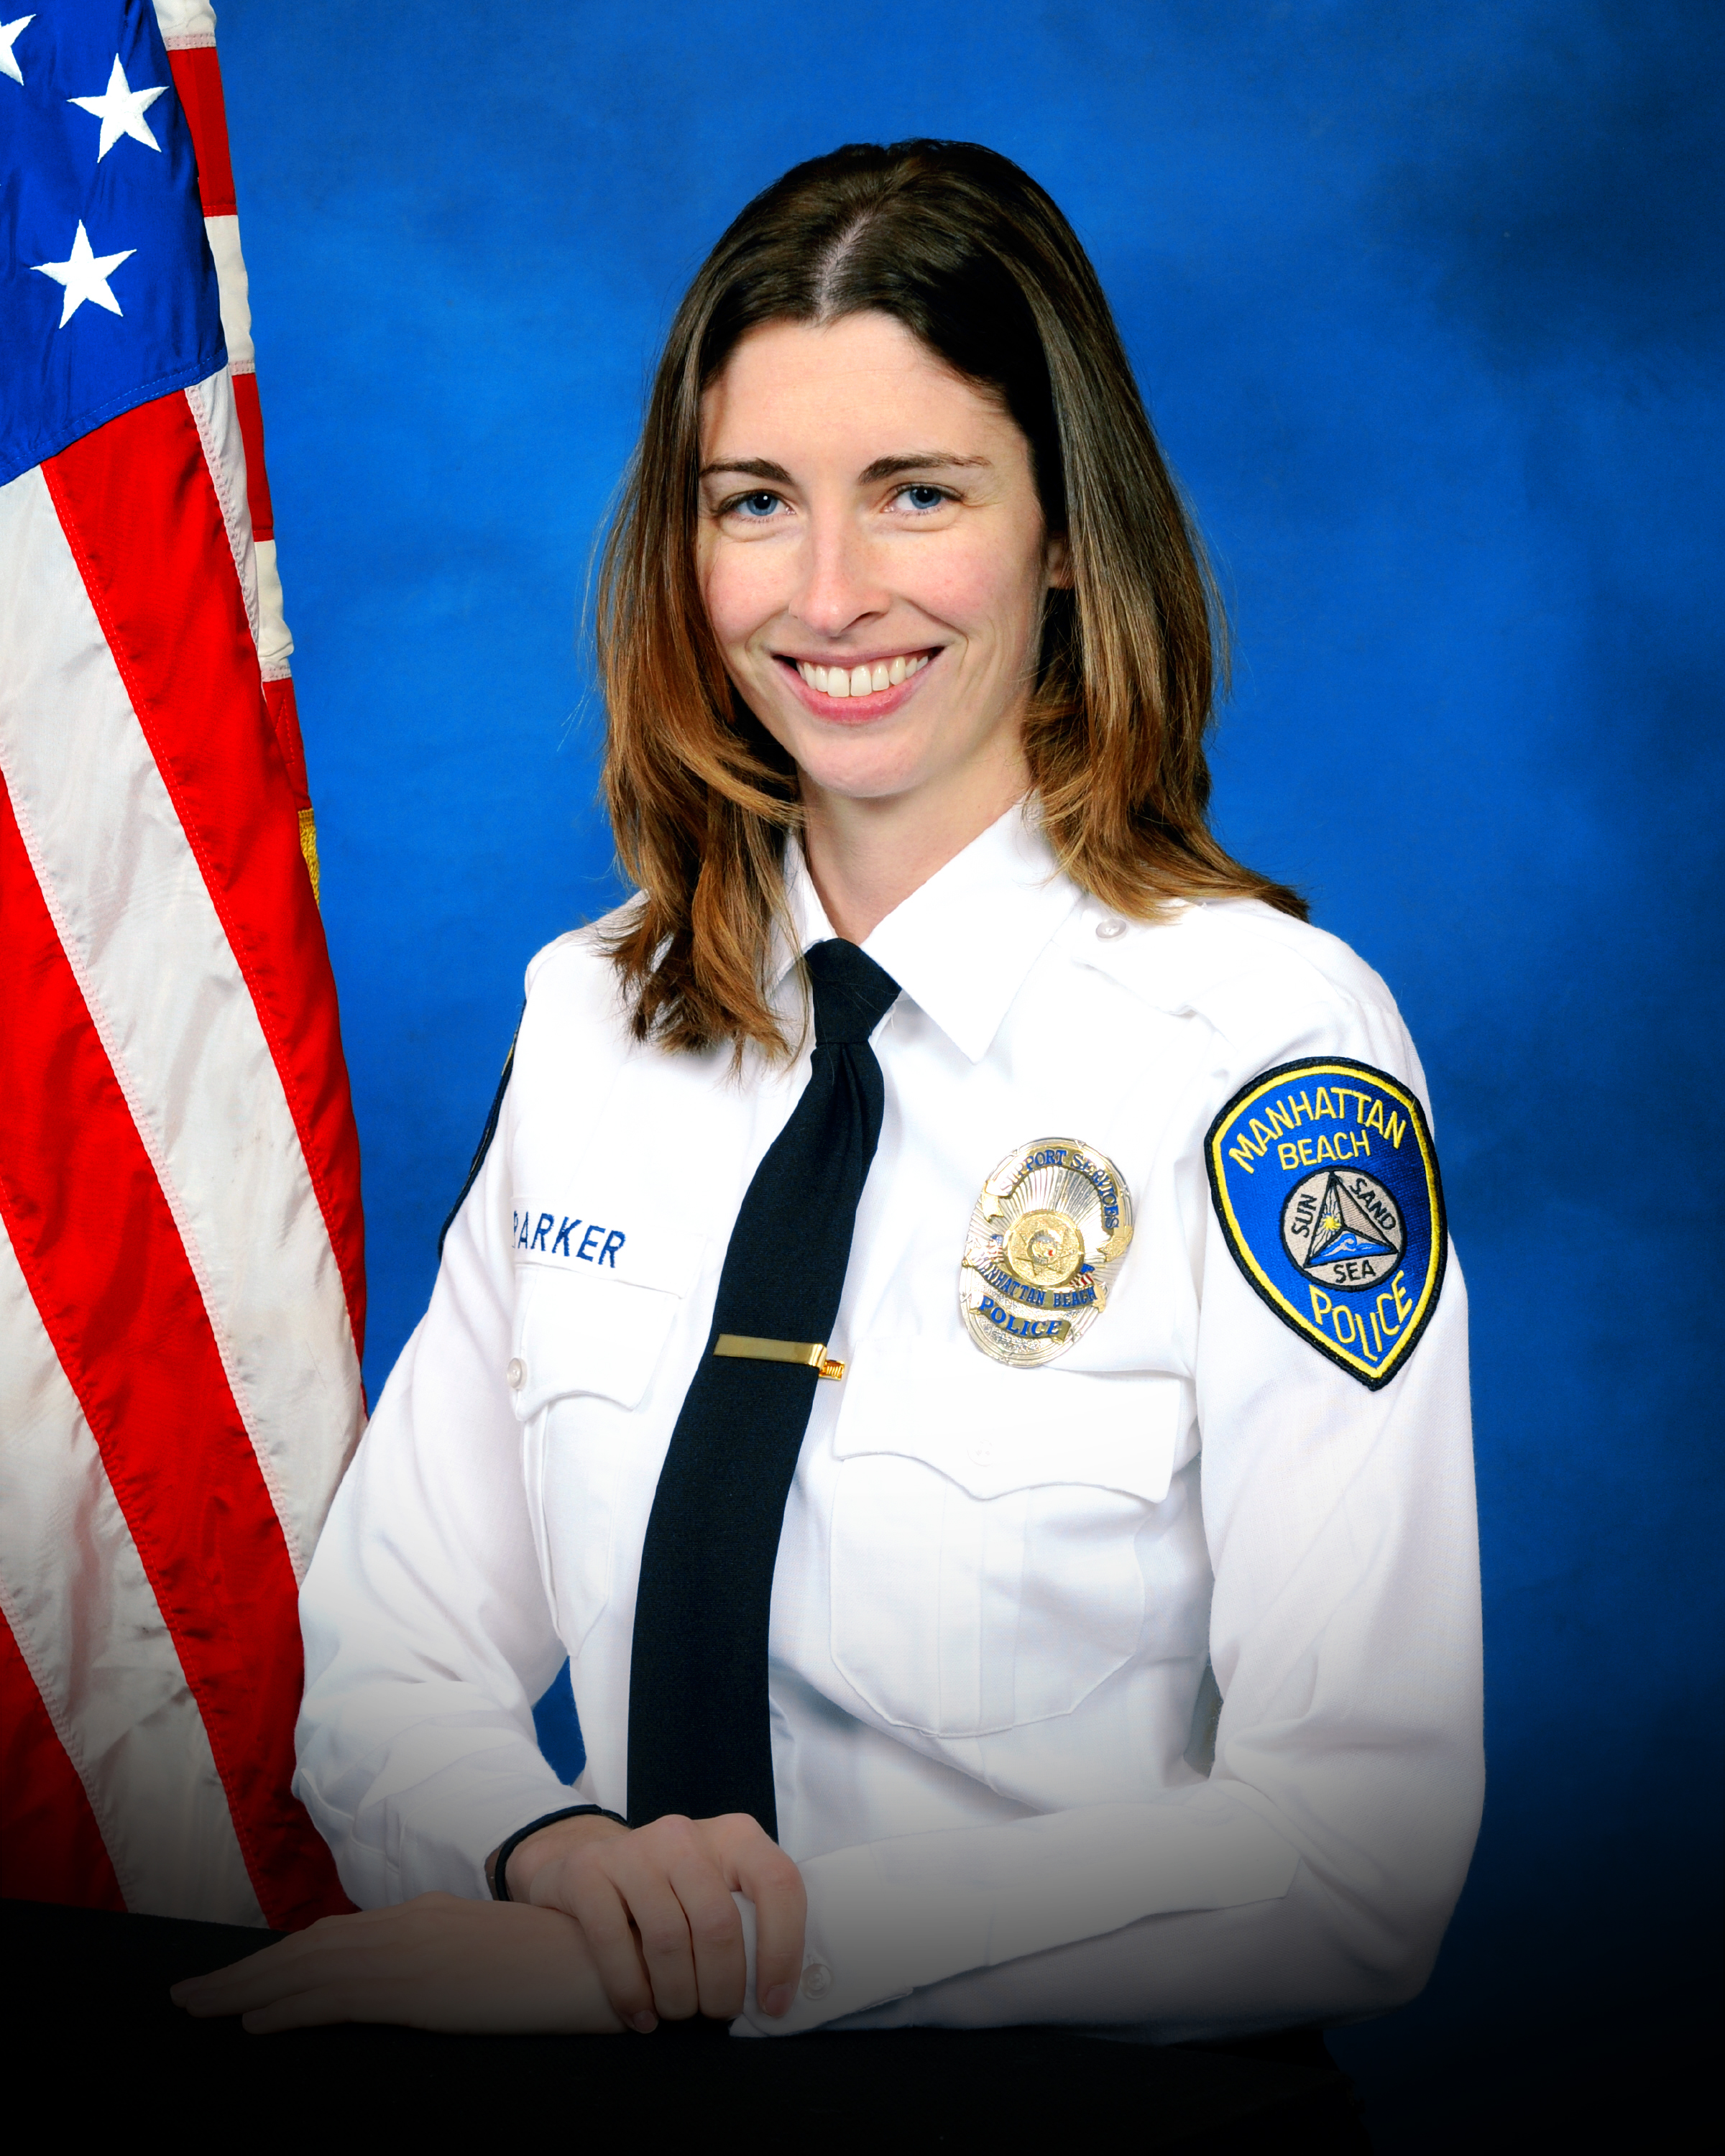 <div class='meta'><div class='origin-logo' data-origin='none'></div><span class='caption-text' data-credit='Manhattan Beach Police Department'>Rachael Parker, an employee of the Manhattan Beach Police Department.</span></div>